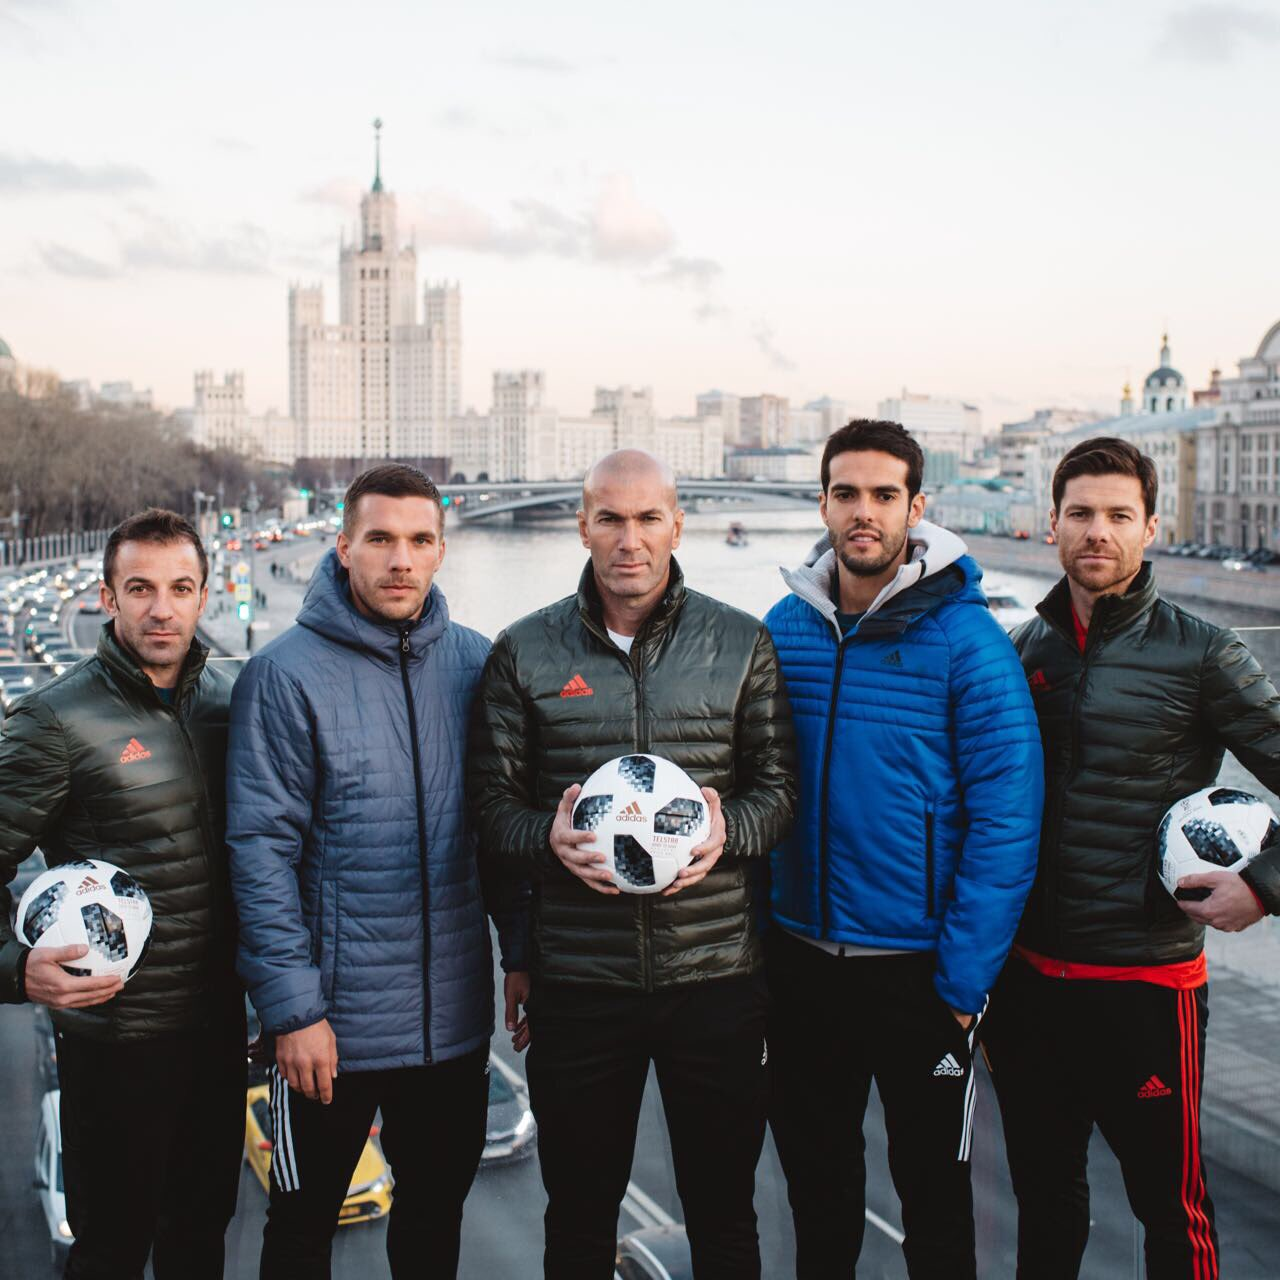 5 World Champions, 3 stripes and one perfect ball. Welcome #Telstar18 ⚽️���� #HereToCreate https://t.co/MOp2Oo7yvl